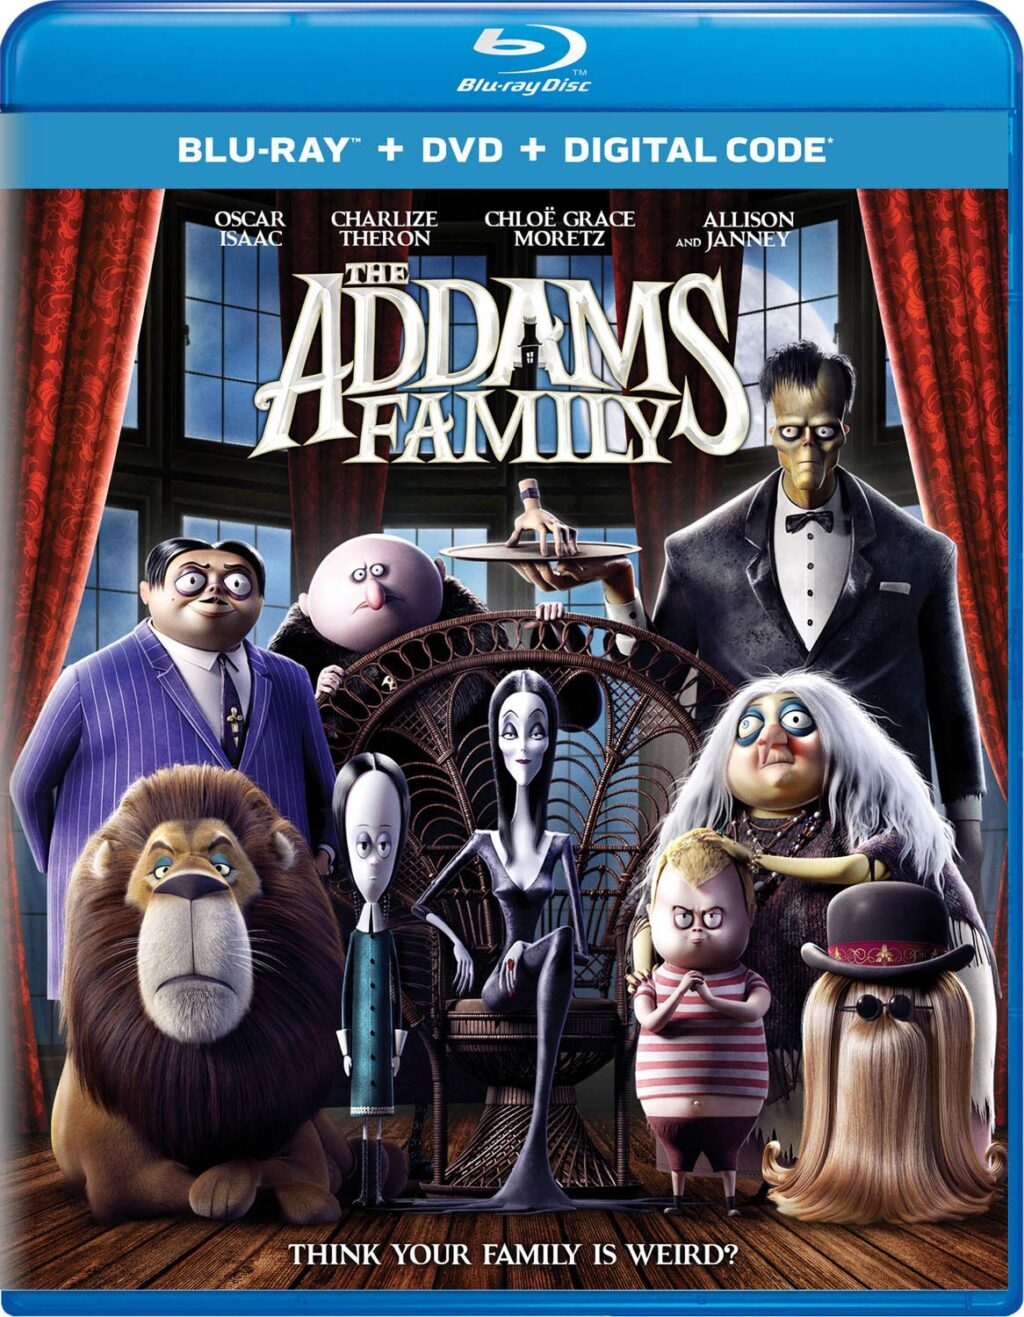 THE ADDAMS FAMILY Blu ray DC 1024x1317 - THE ADDAMS FAMILY Hits Blu-ray In January